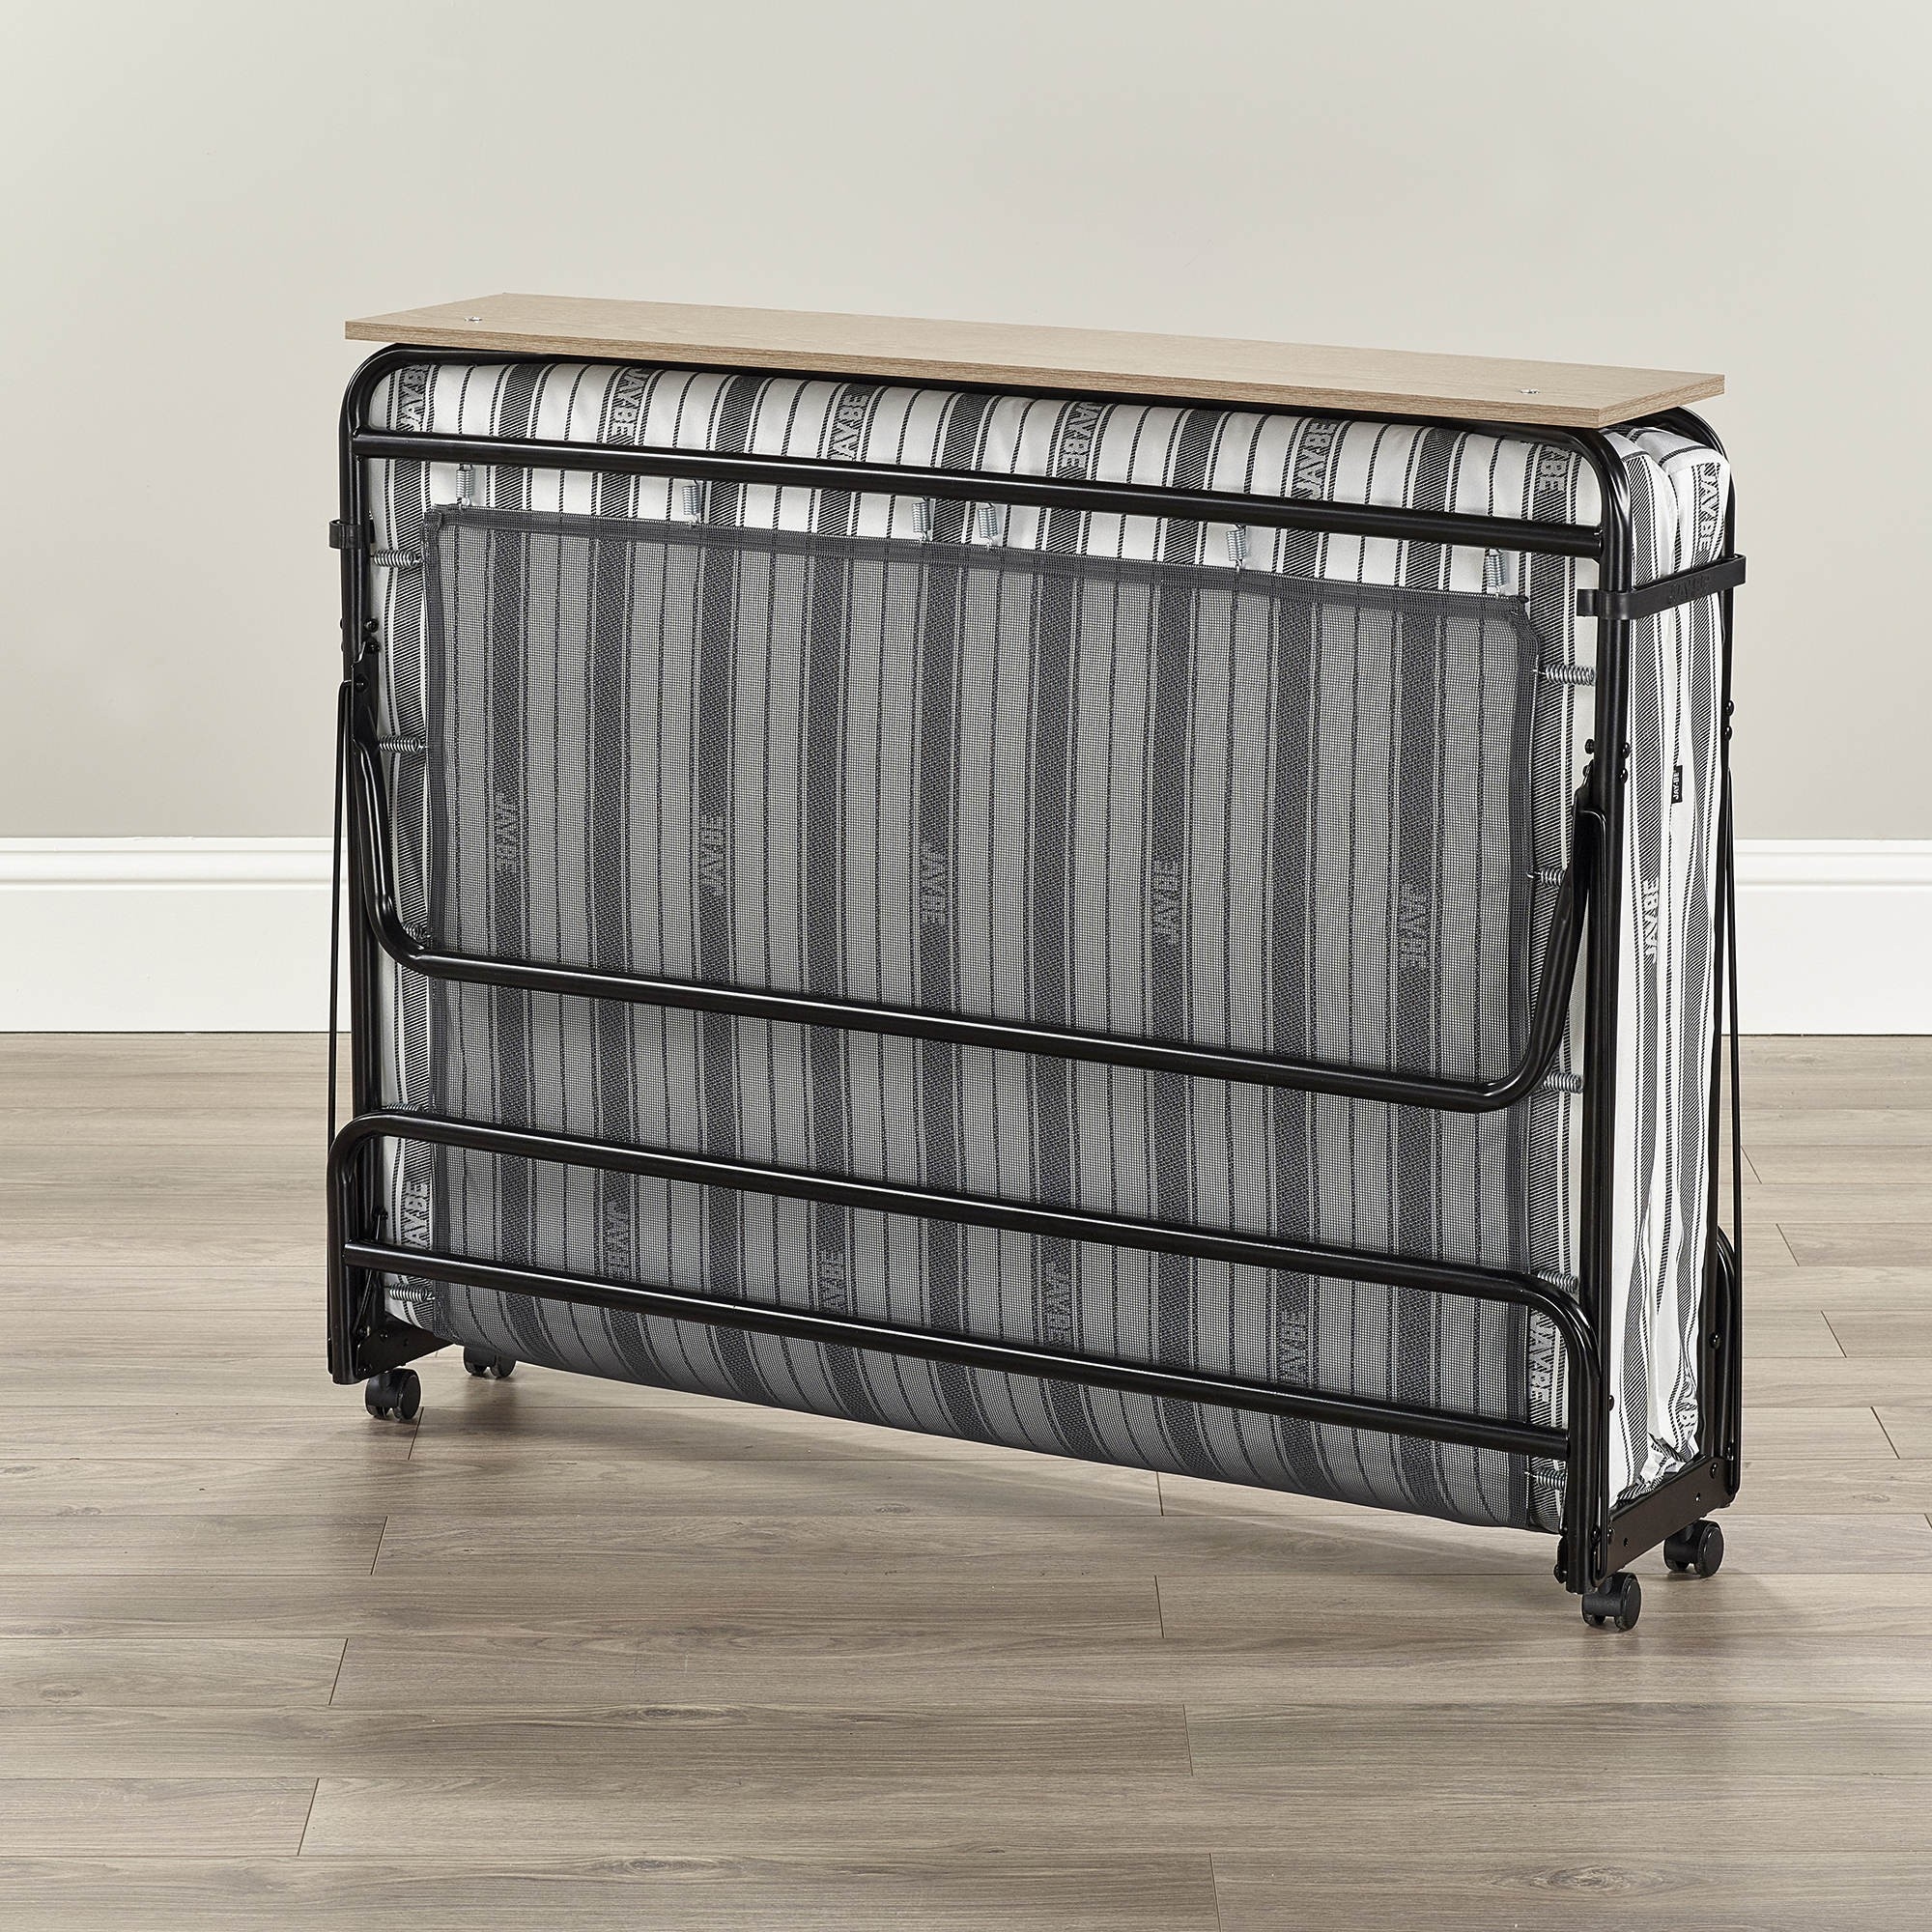 Double Folding Bed With Airflow Mattress